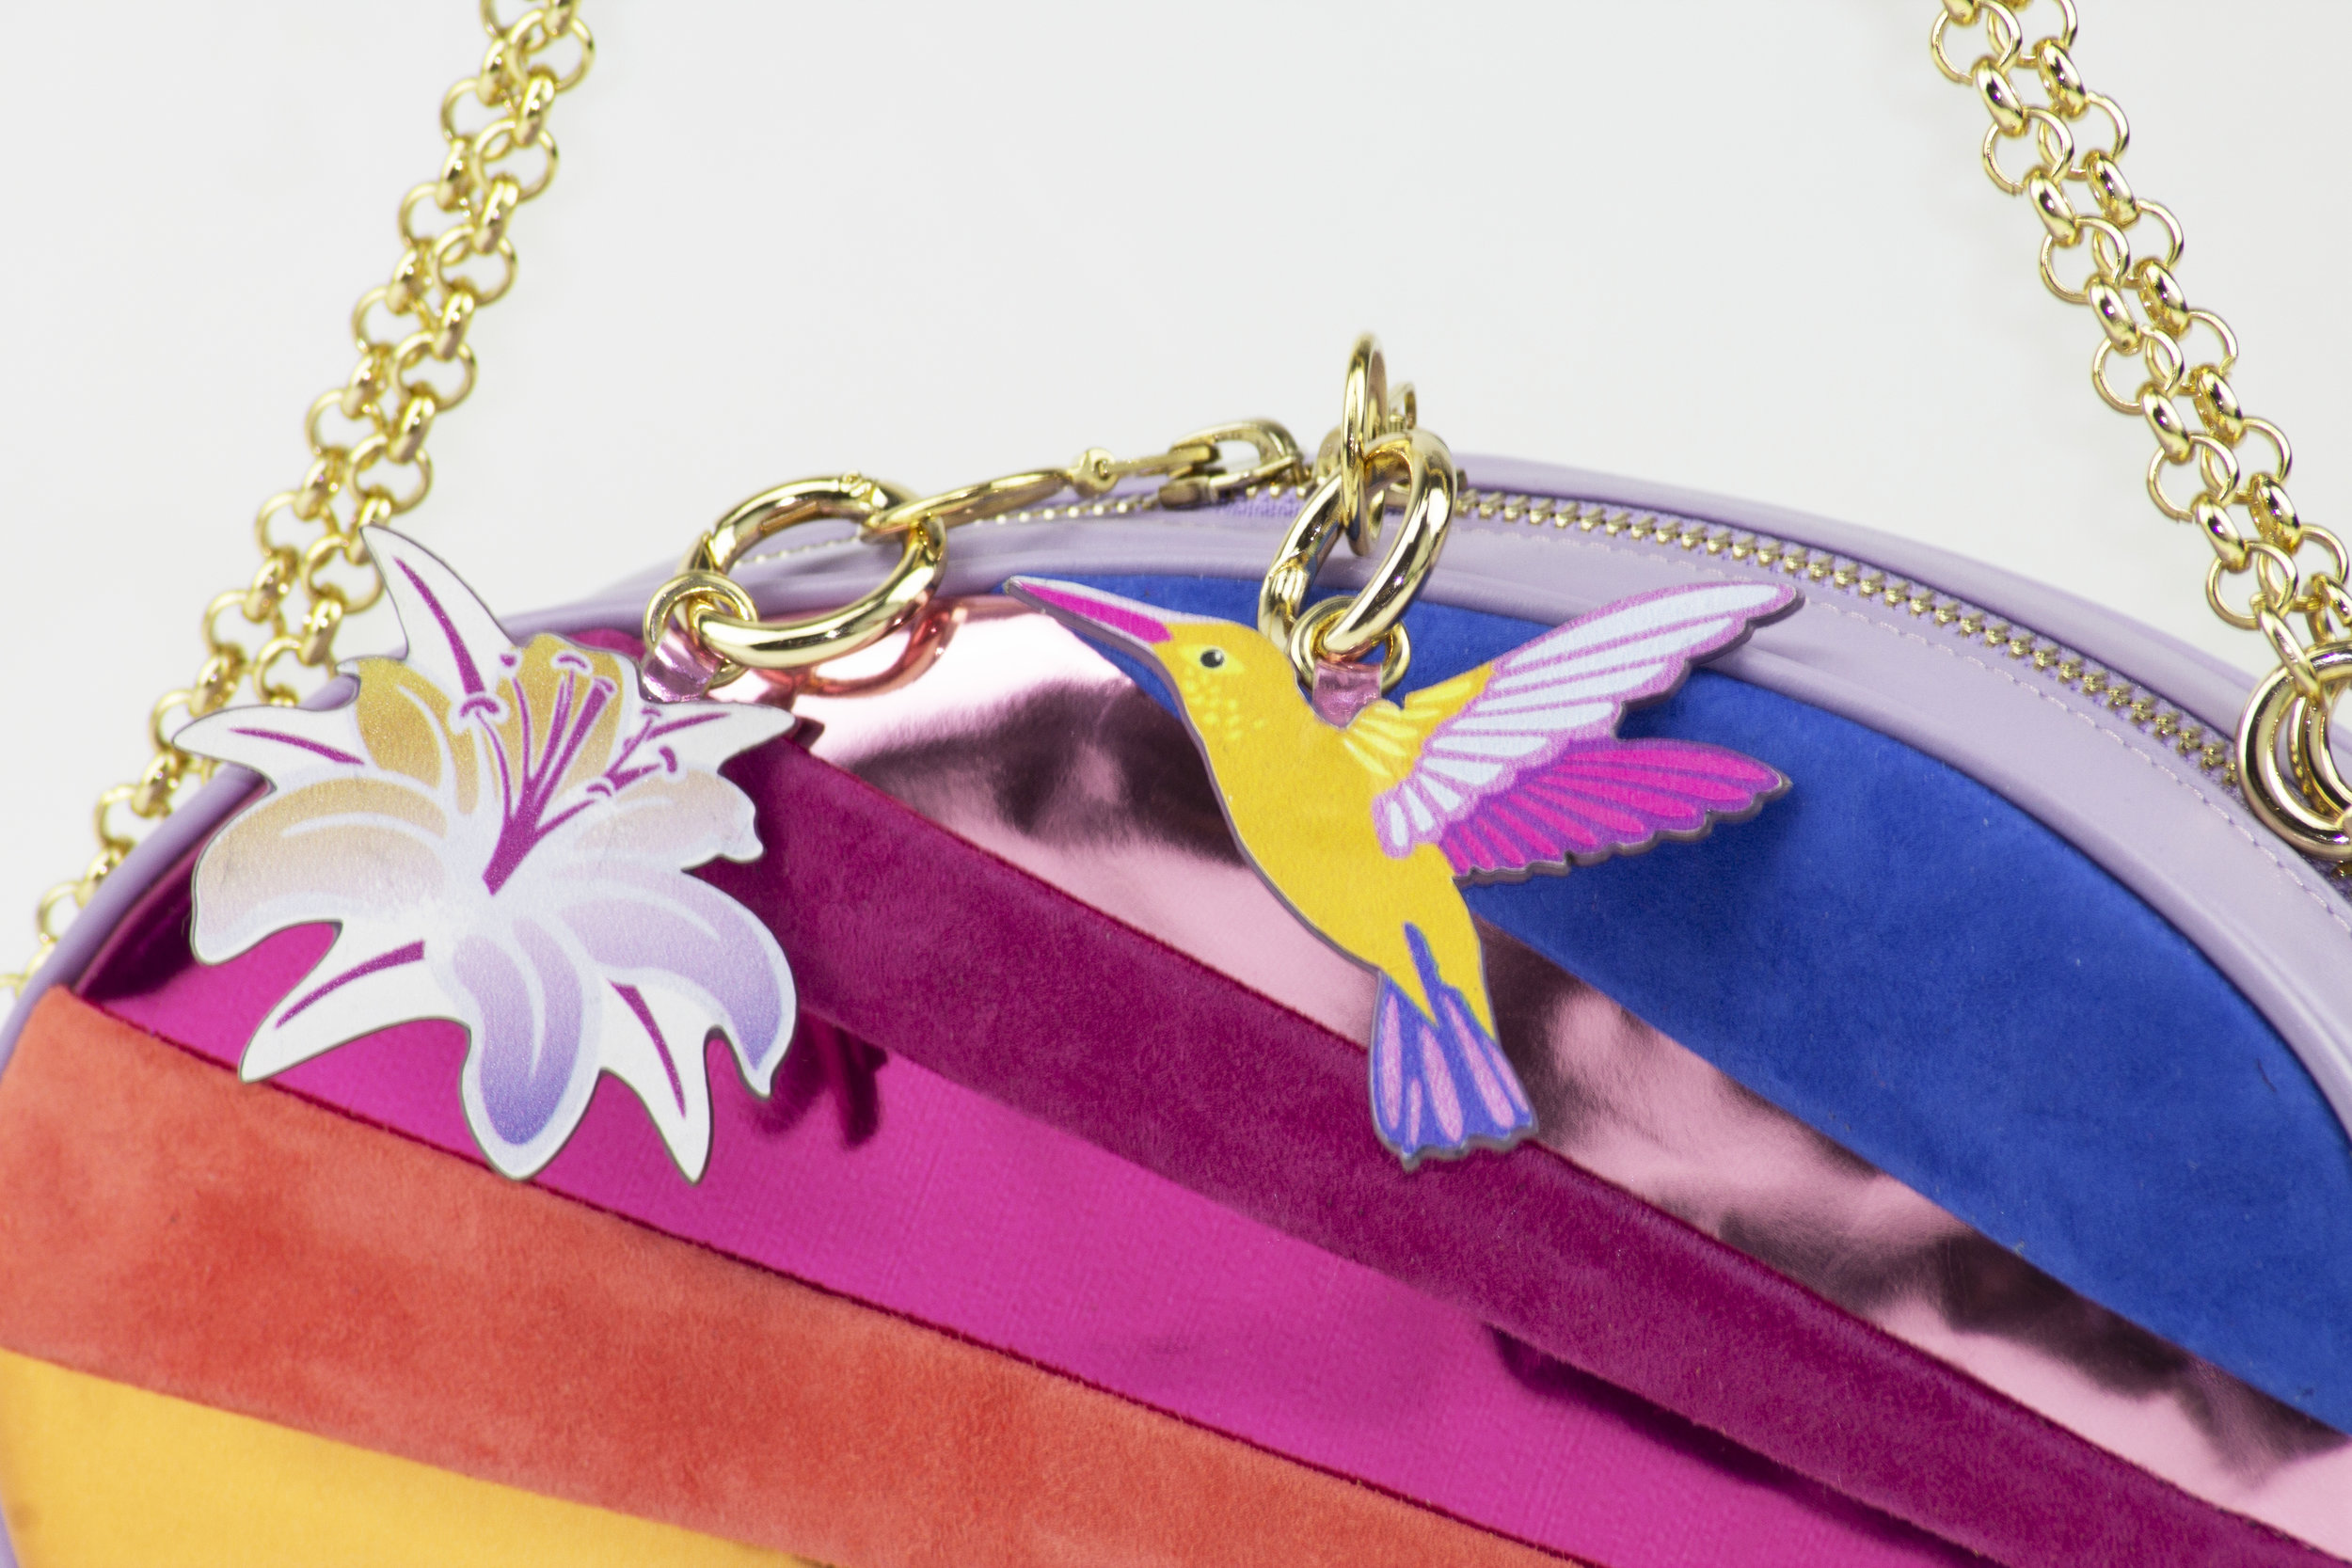 PERSONALISE YOUR CLUTCH - CARRY A LUCKY CHARM EVERYWHERE YOU GO